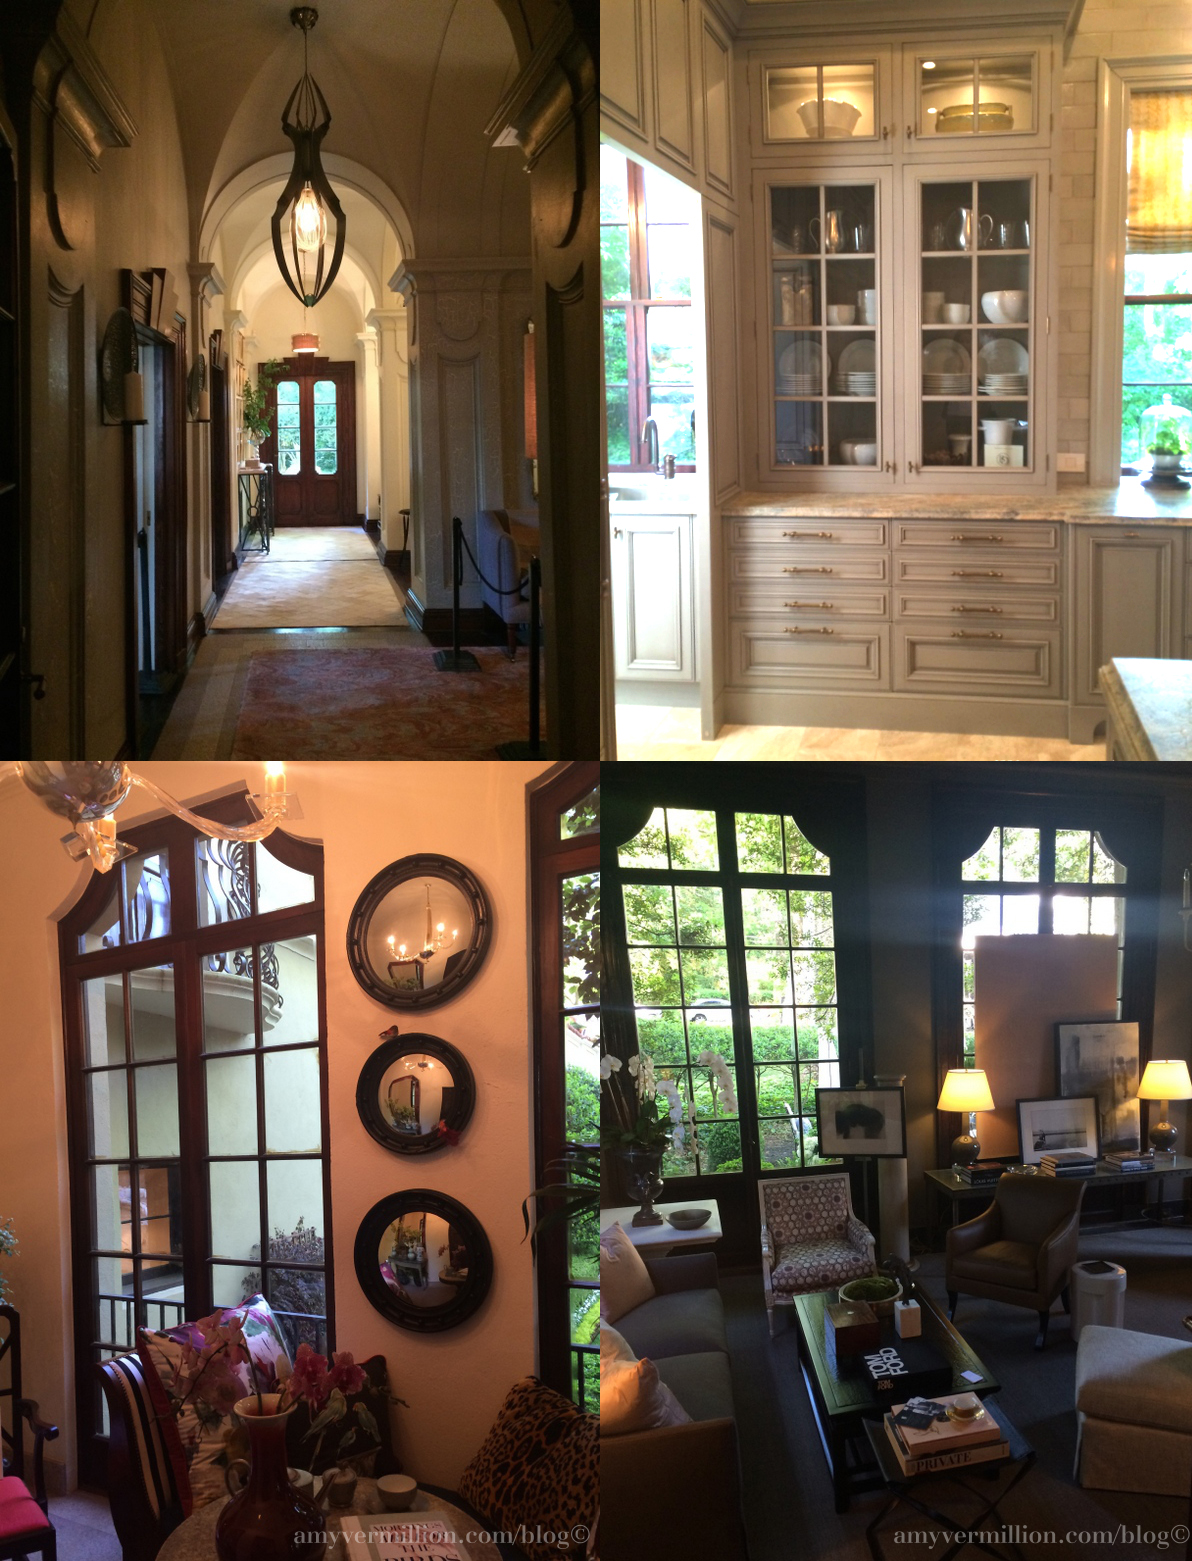 palazzo rosa atlanta decorators show house and gardens interiors better decorating bible southern mansion hallway arches meditteranean style kitchen rich